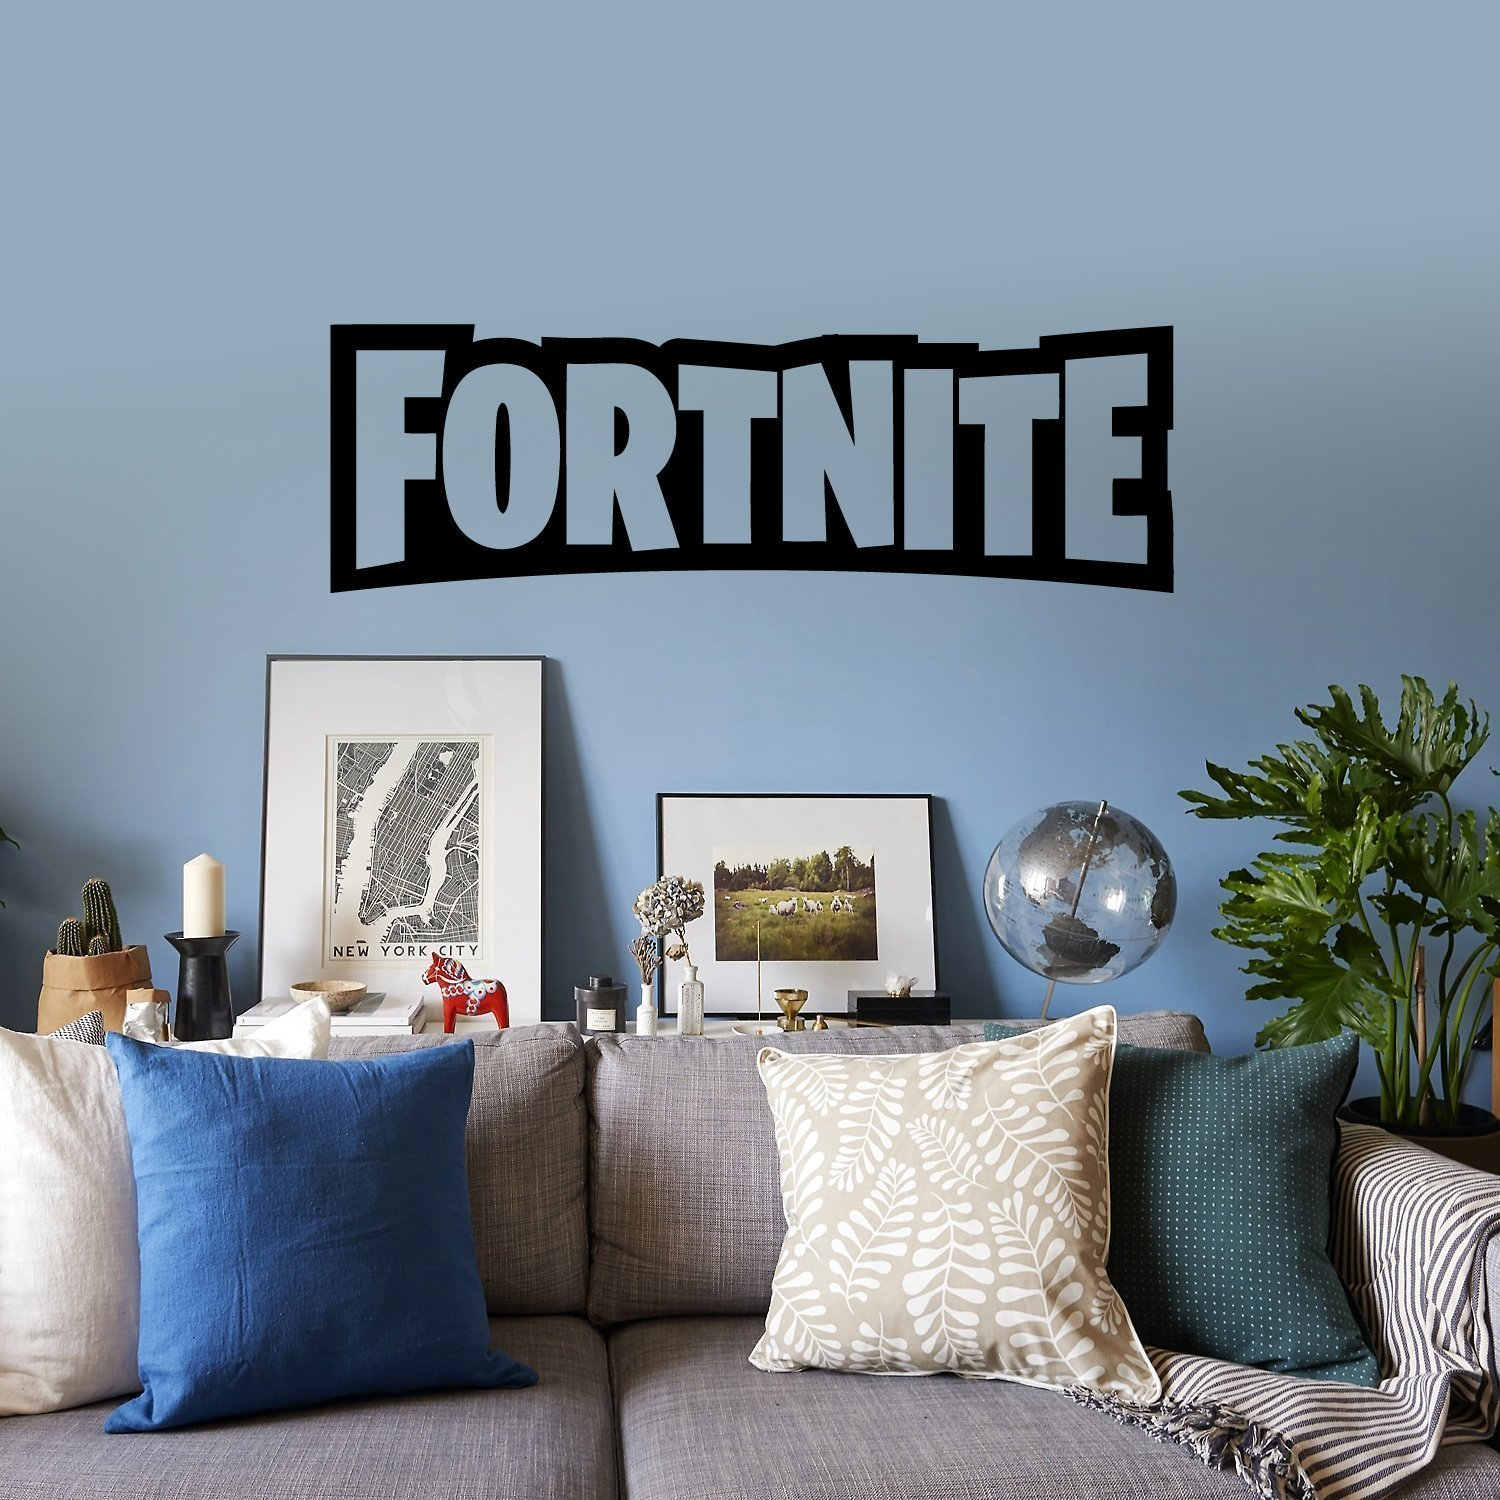 A contemporary style of Fortnite